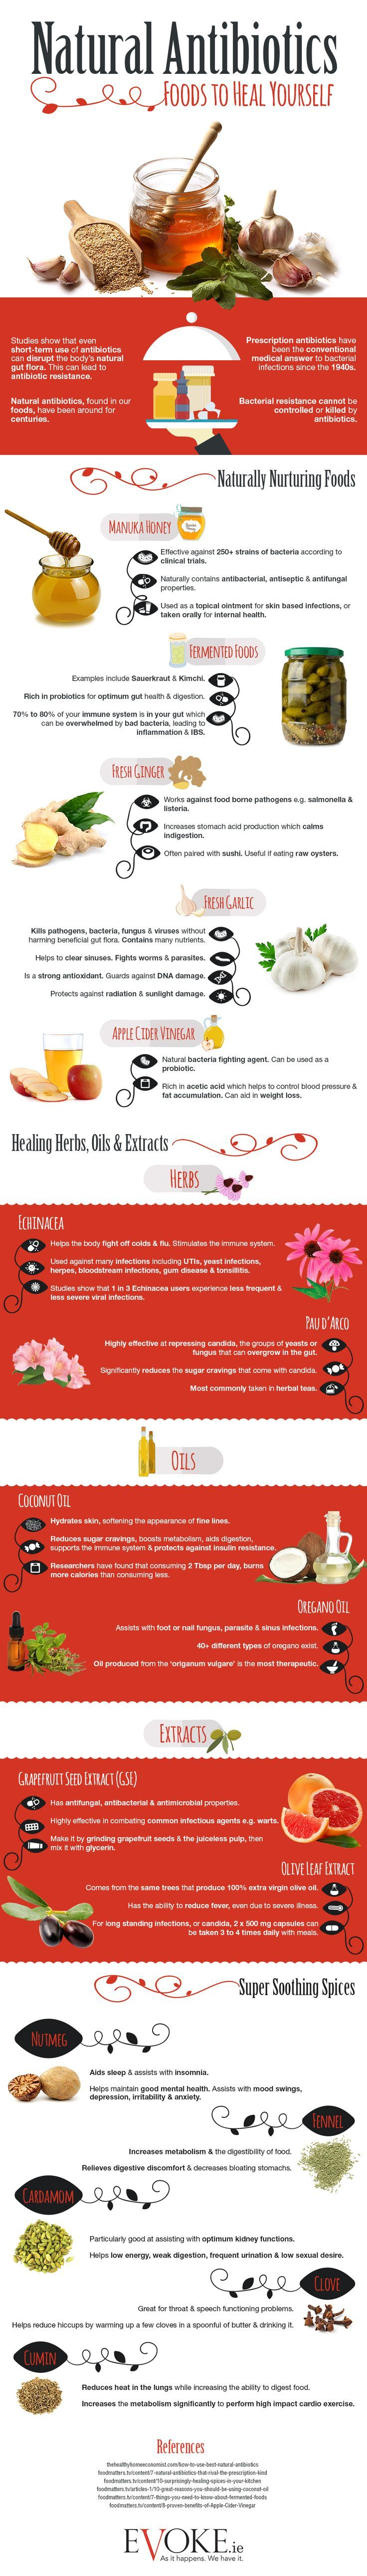 The Best Natural Antibiotics For Drug-Free Healing Infographic